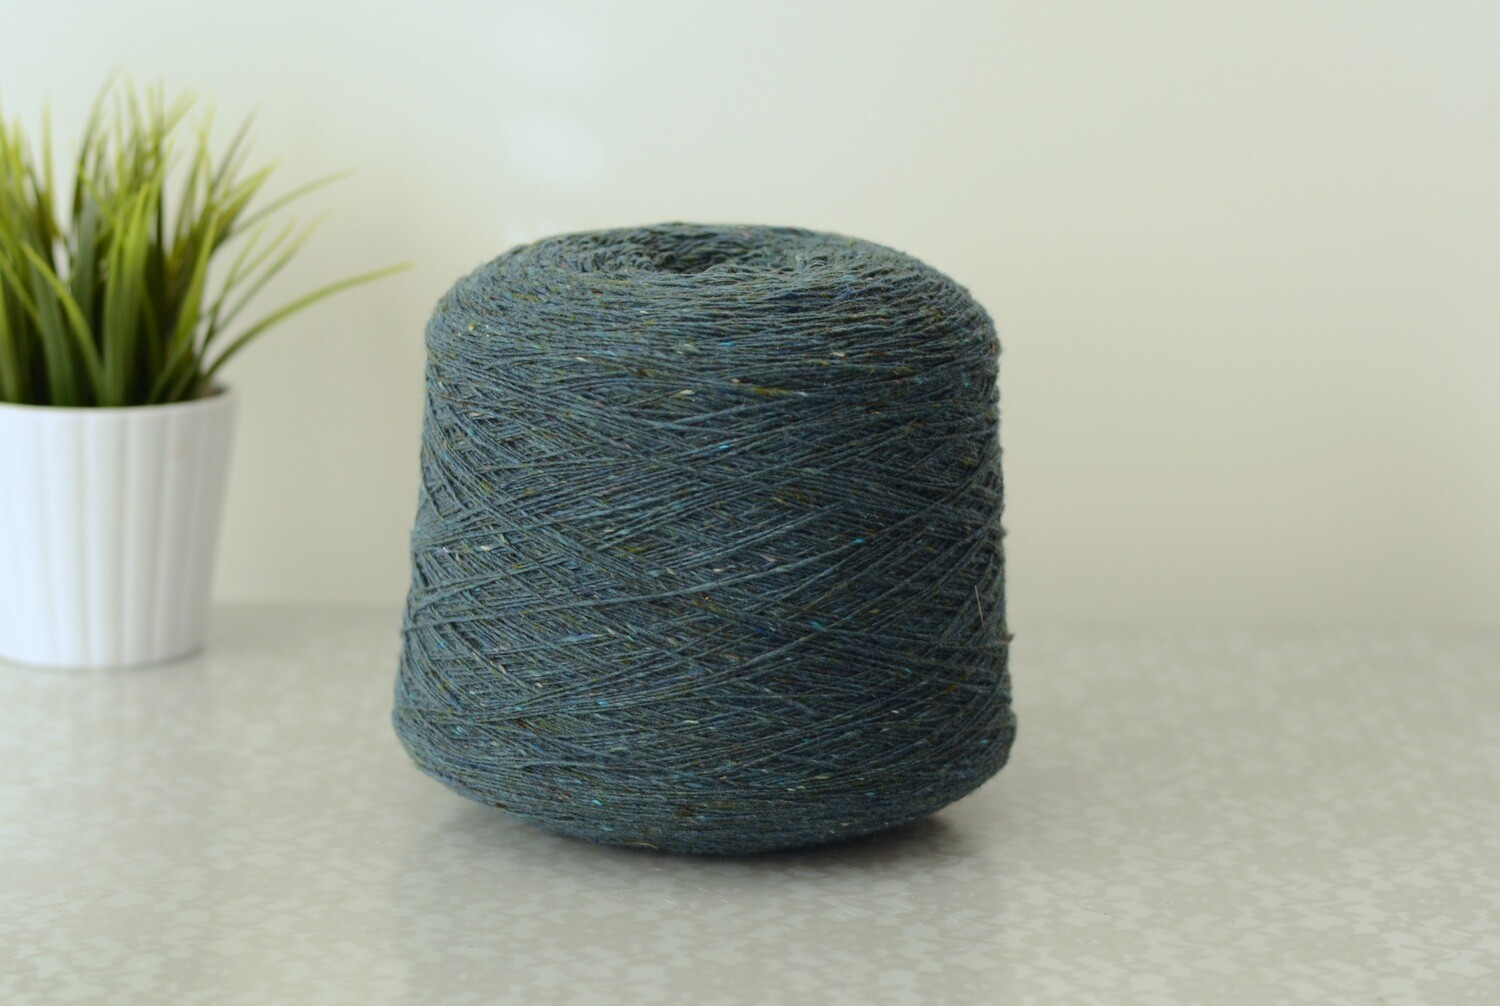 Soft Donegal Tweed - NEAGH